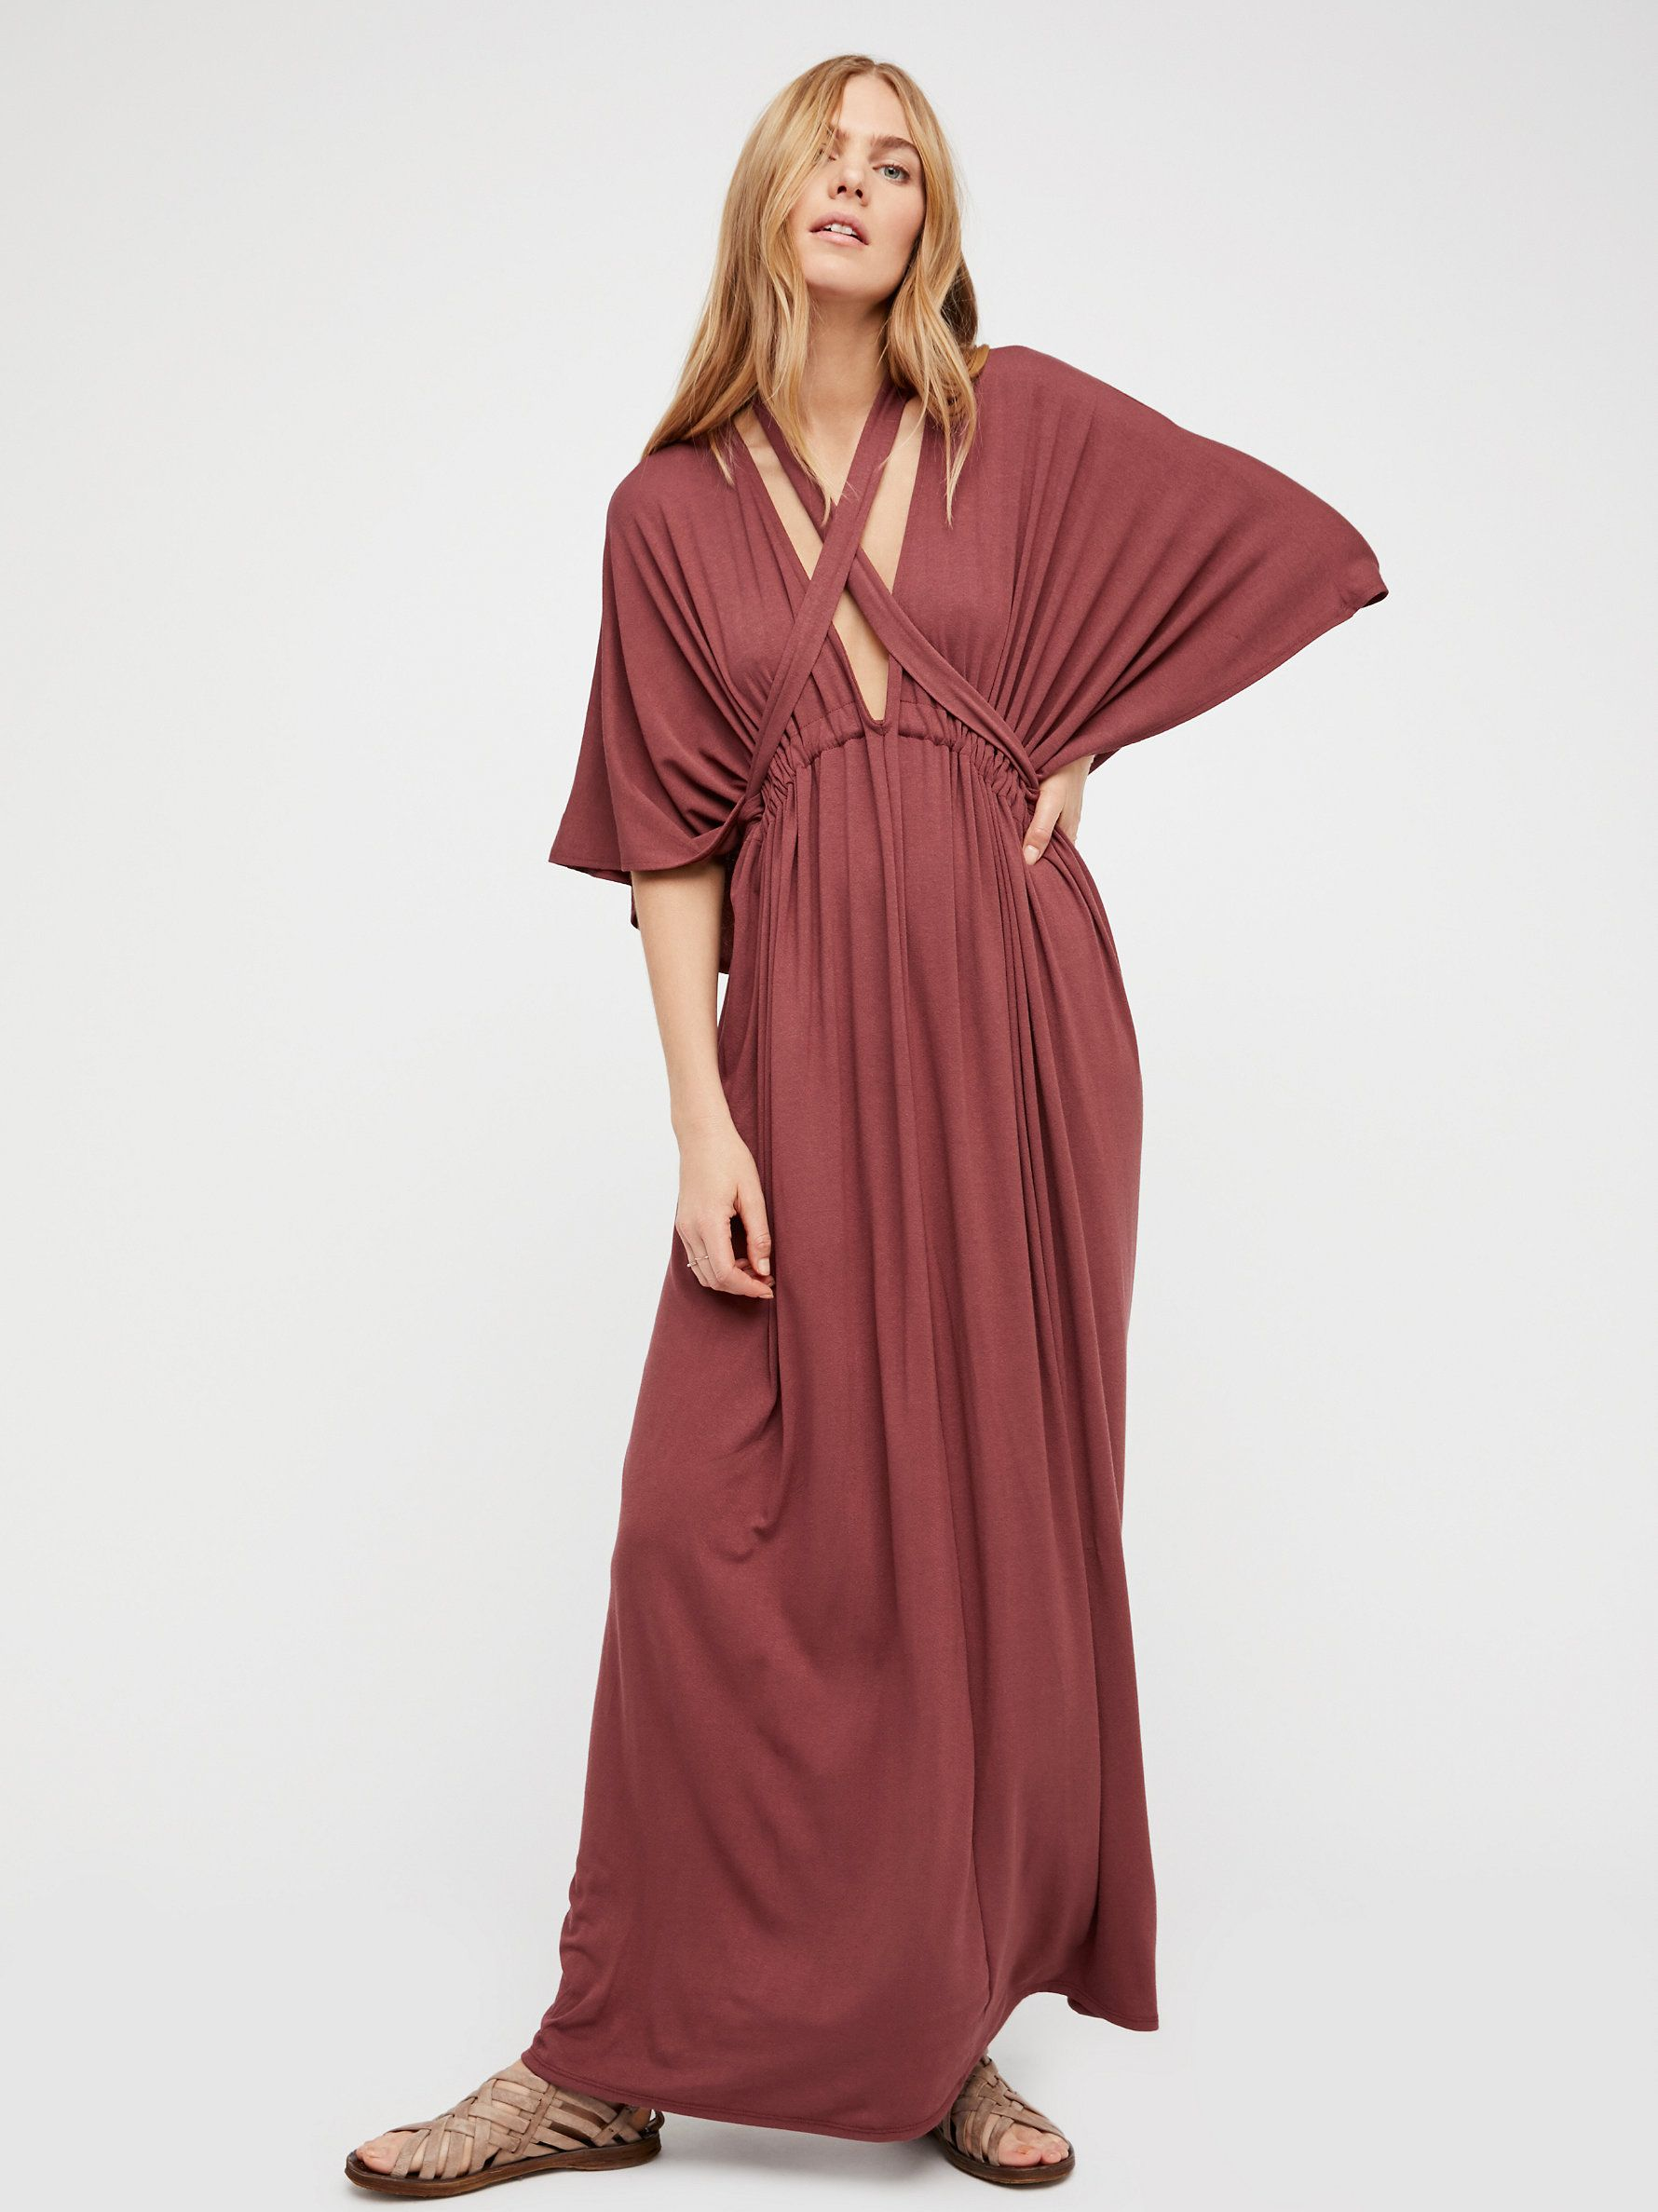 Raquel dress effortless maxi dress featuring a simple tie at the